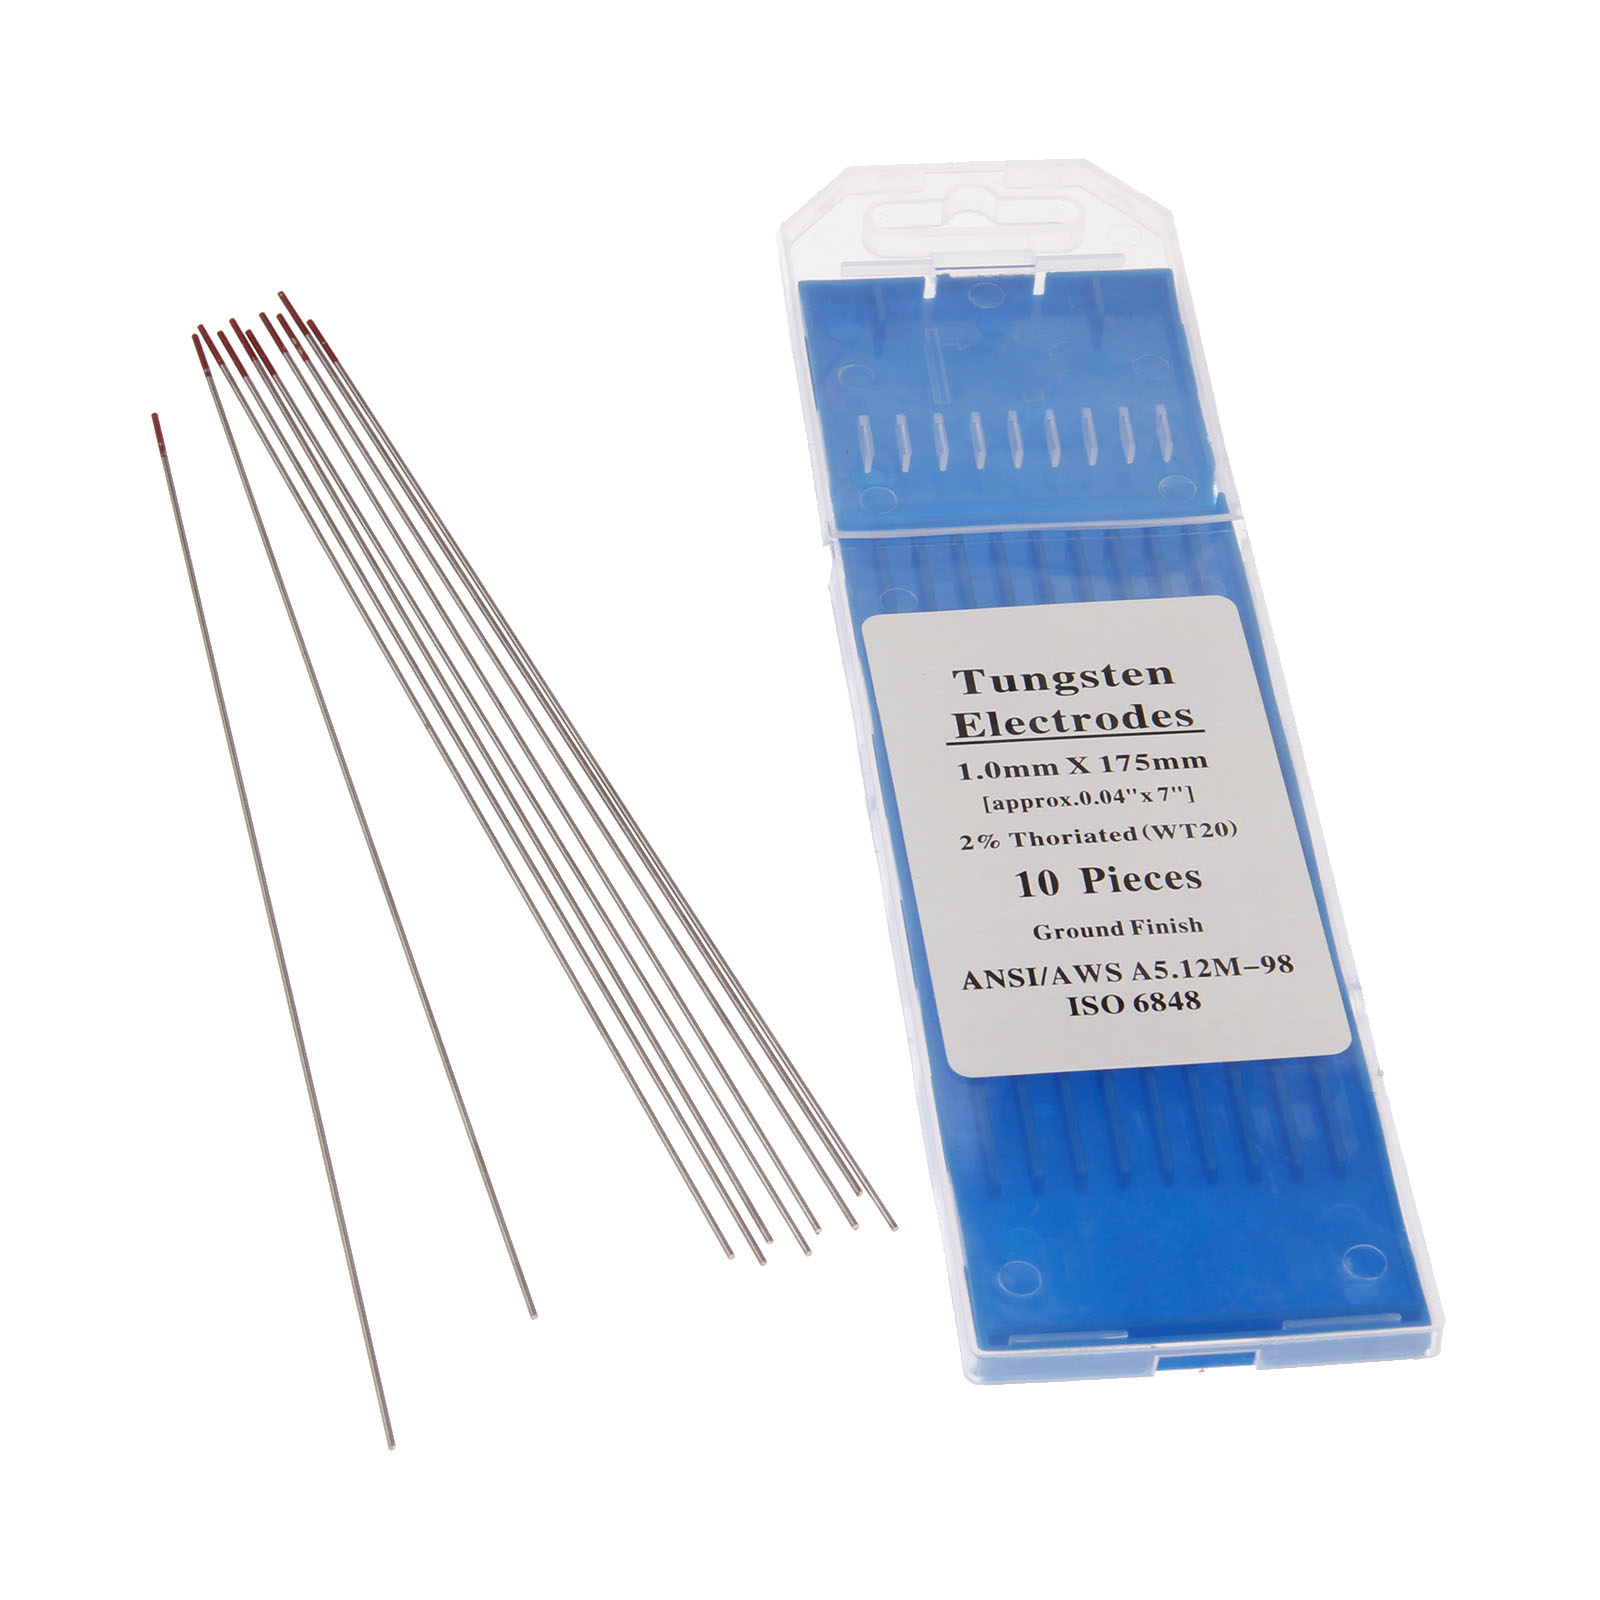 Red White Black 4.0mm 1.0mm Tig Welding Electrodes Tungsten Electrodes Gold 10, Grey 1.2mm Grey